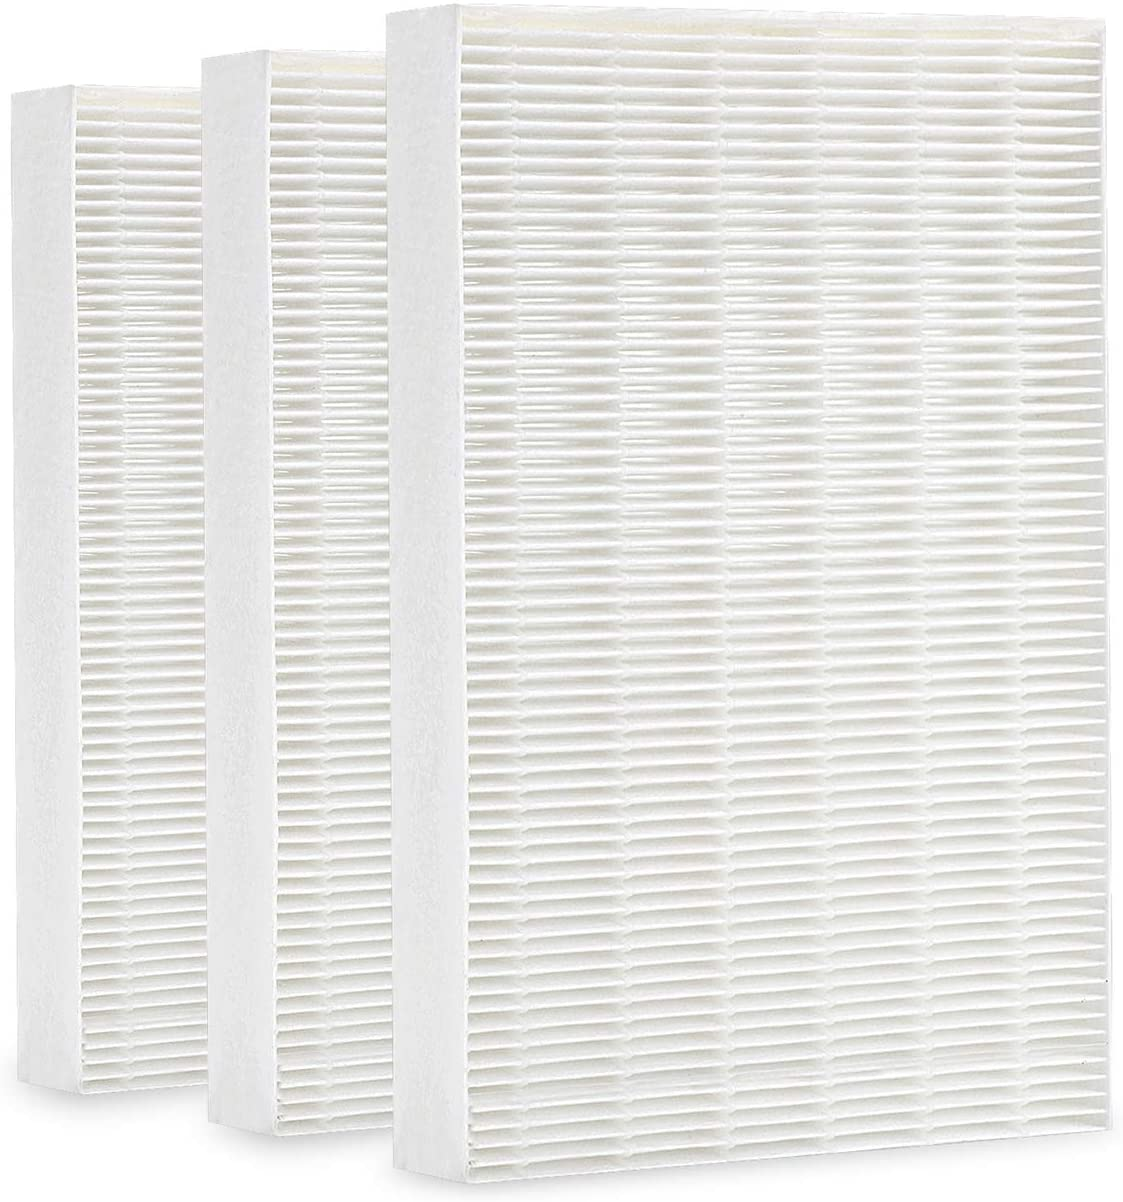 HEPA Filter Replacement - 3 Pack